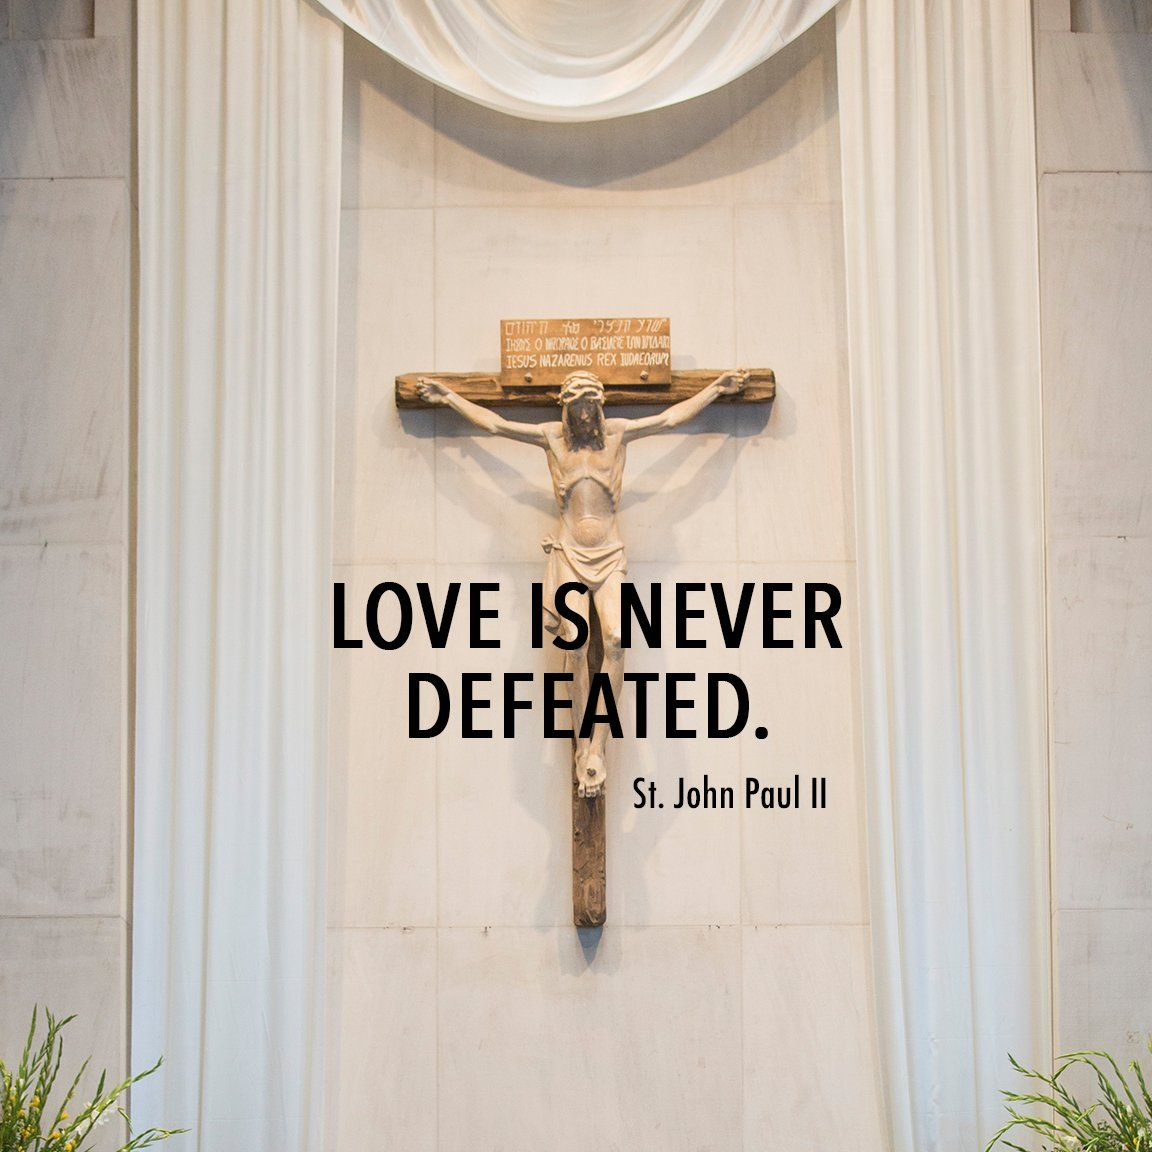 Love is never defeated reflectwithmystics gods word light in quotation buycottarizona Choice Image